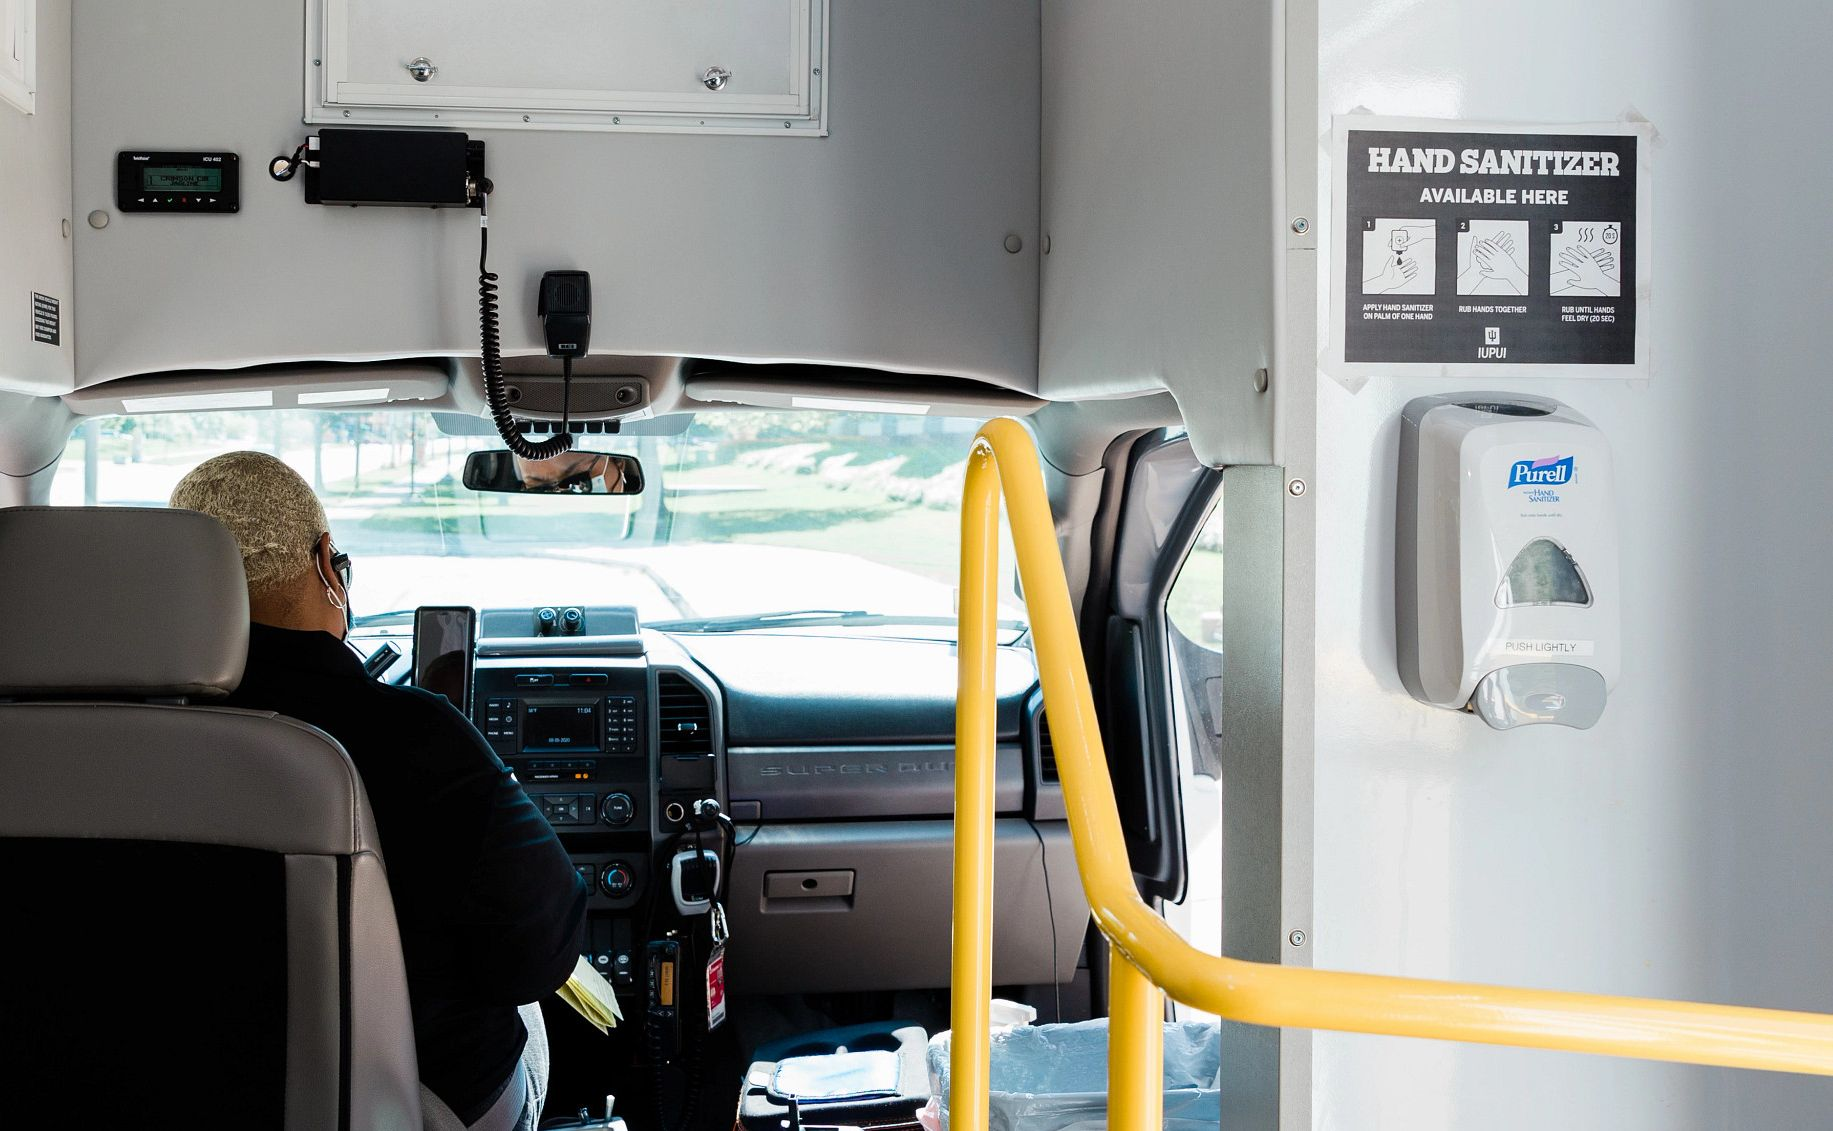 Interior of a bus with a hand sanitizer dispenser and a driver wearing a mask